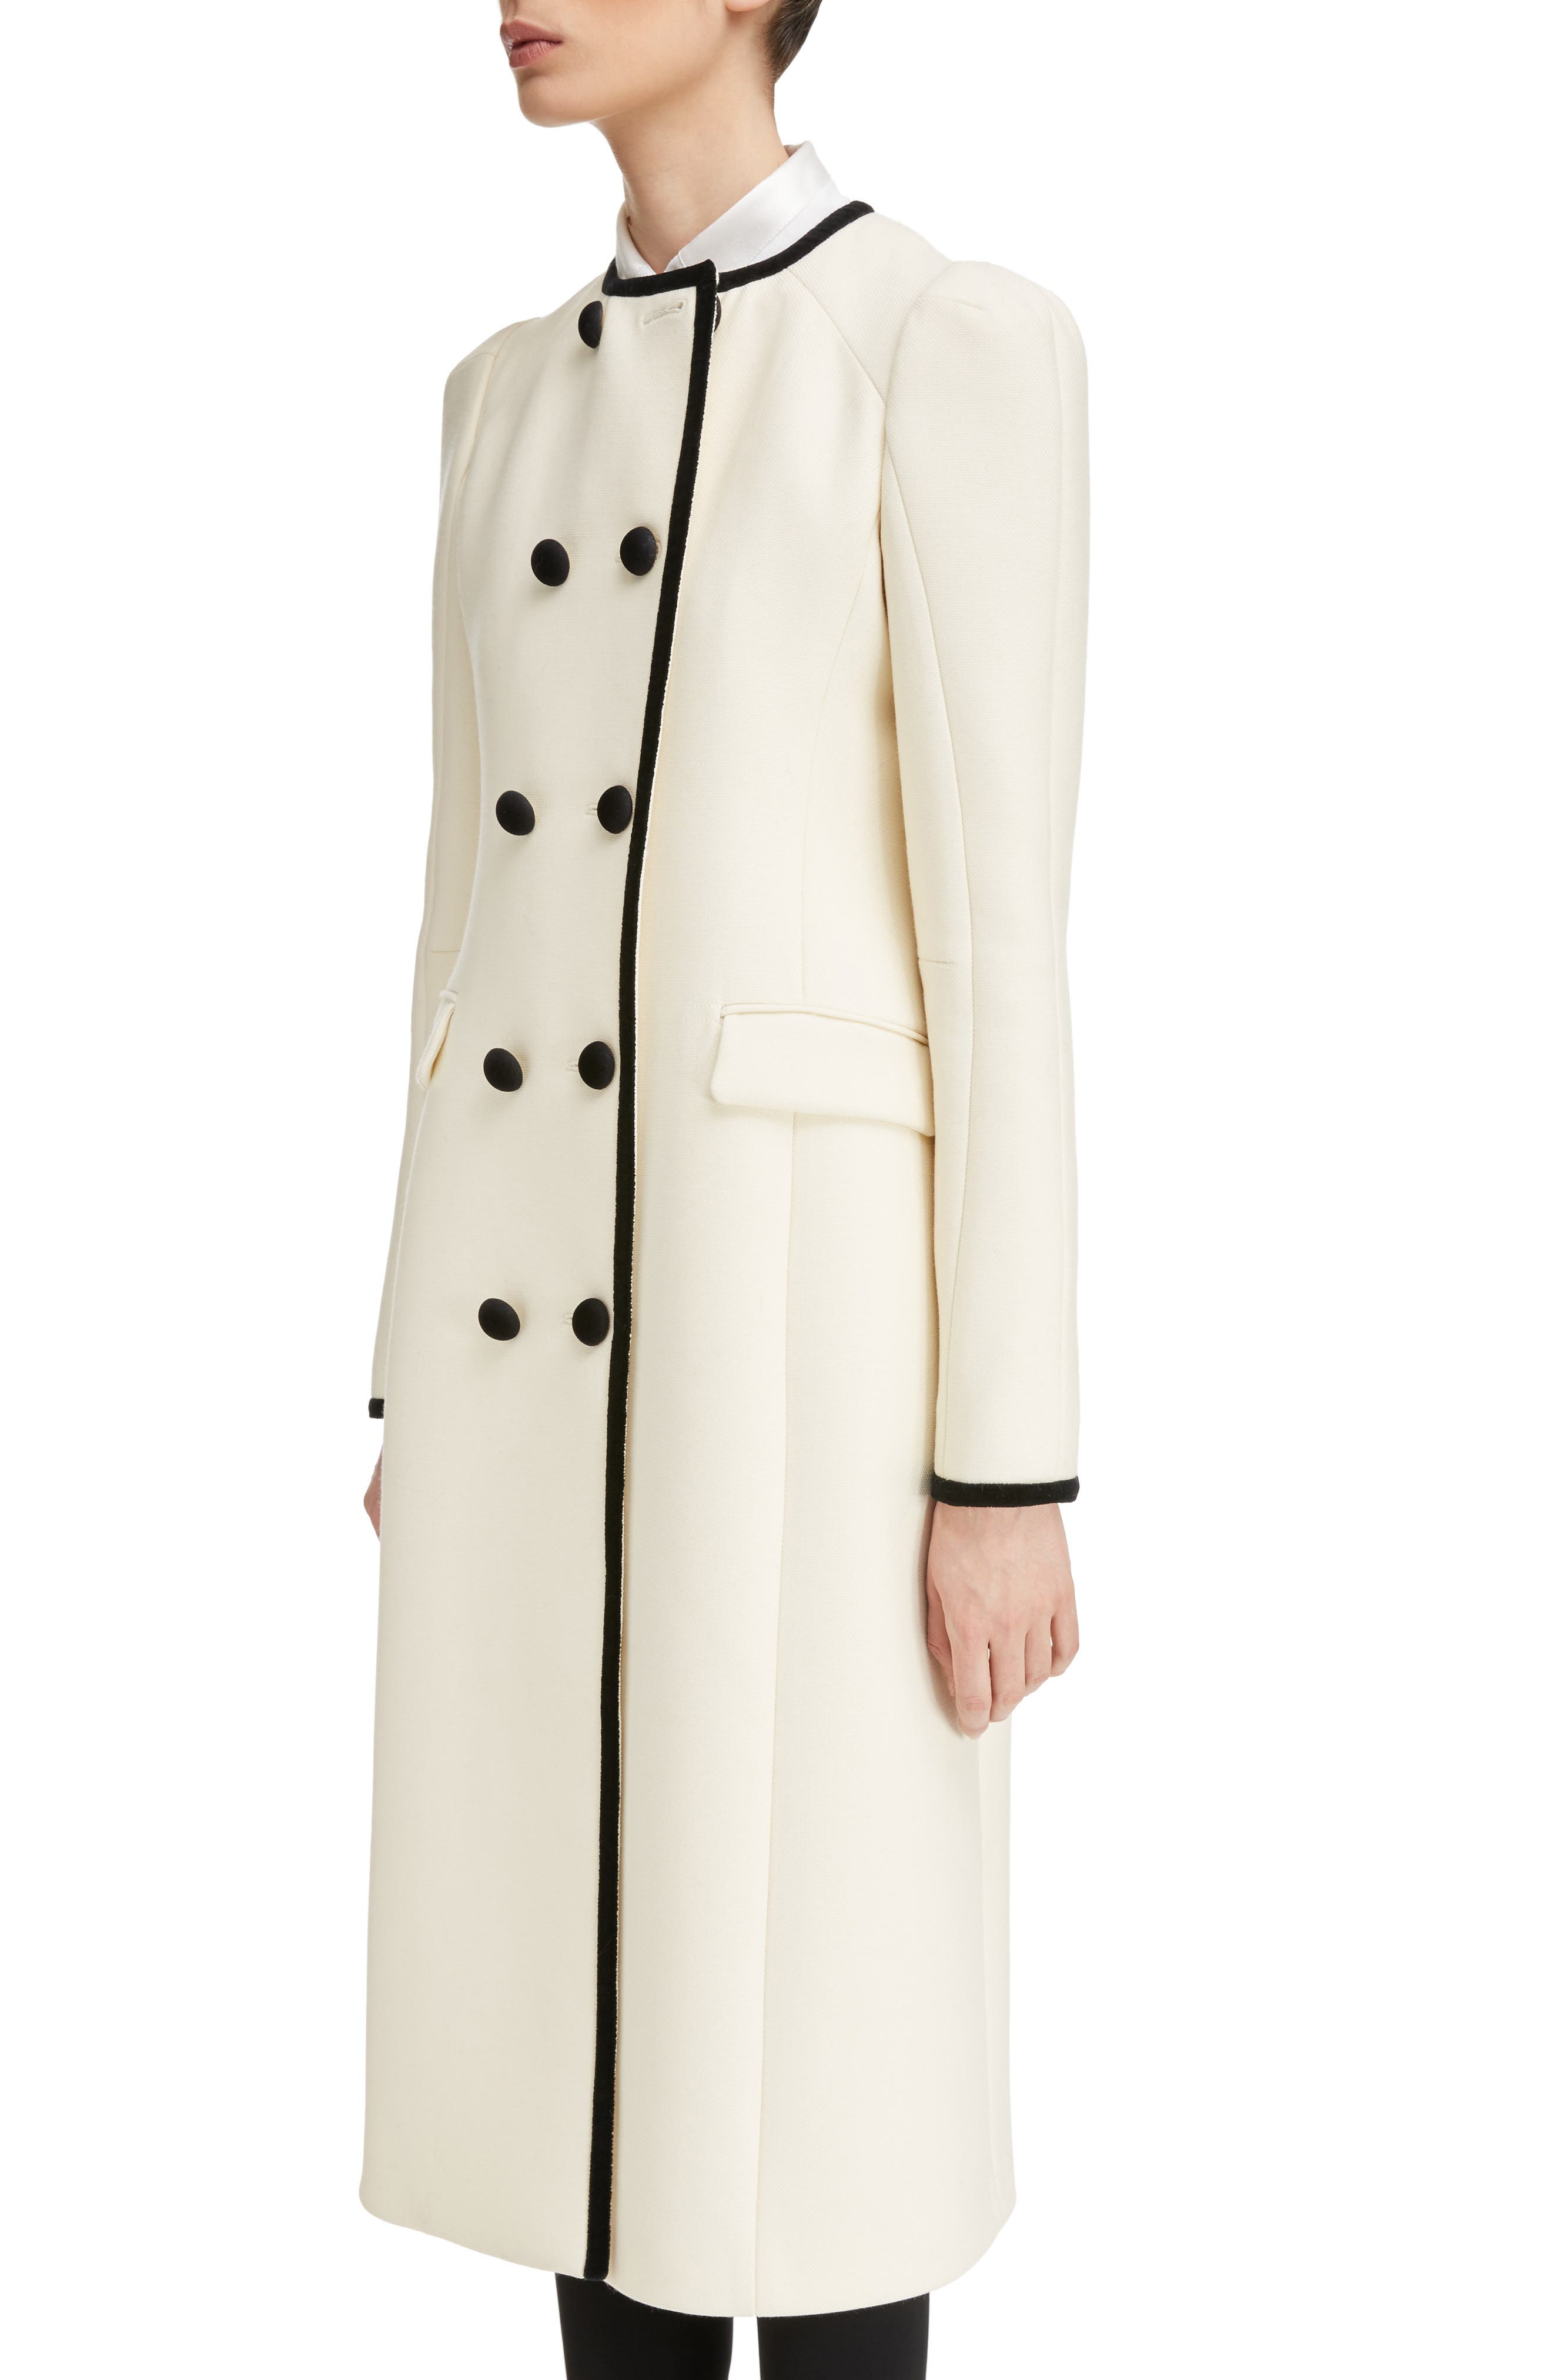 Bellasio Double Breasted Wool Coat,                             Alternate thumbnail 4, color,